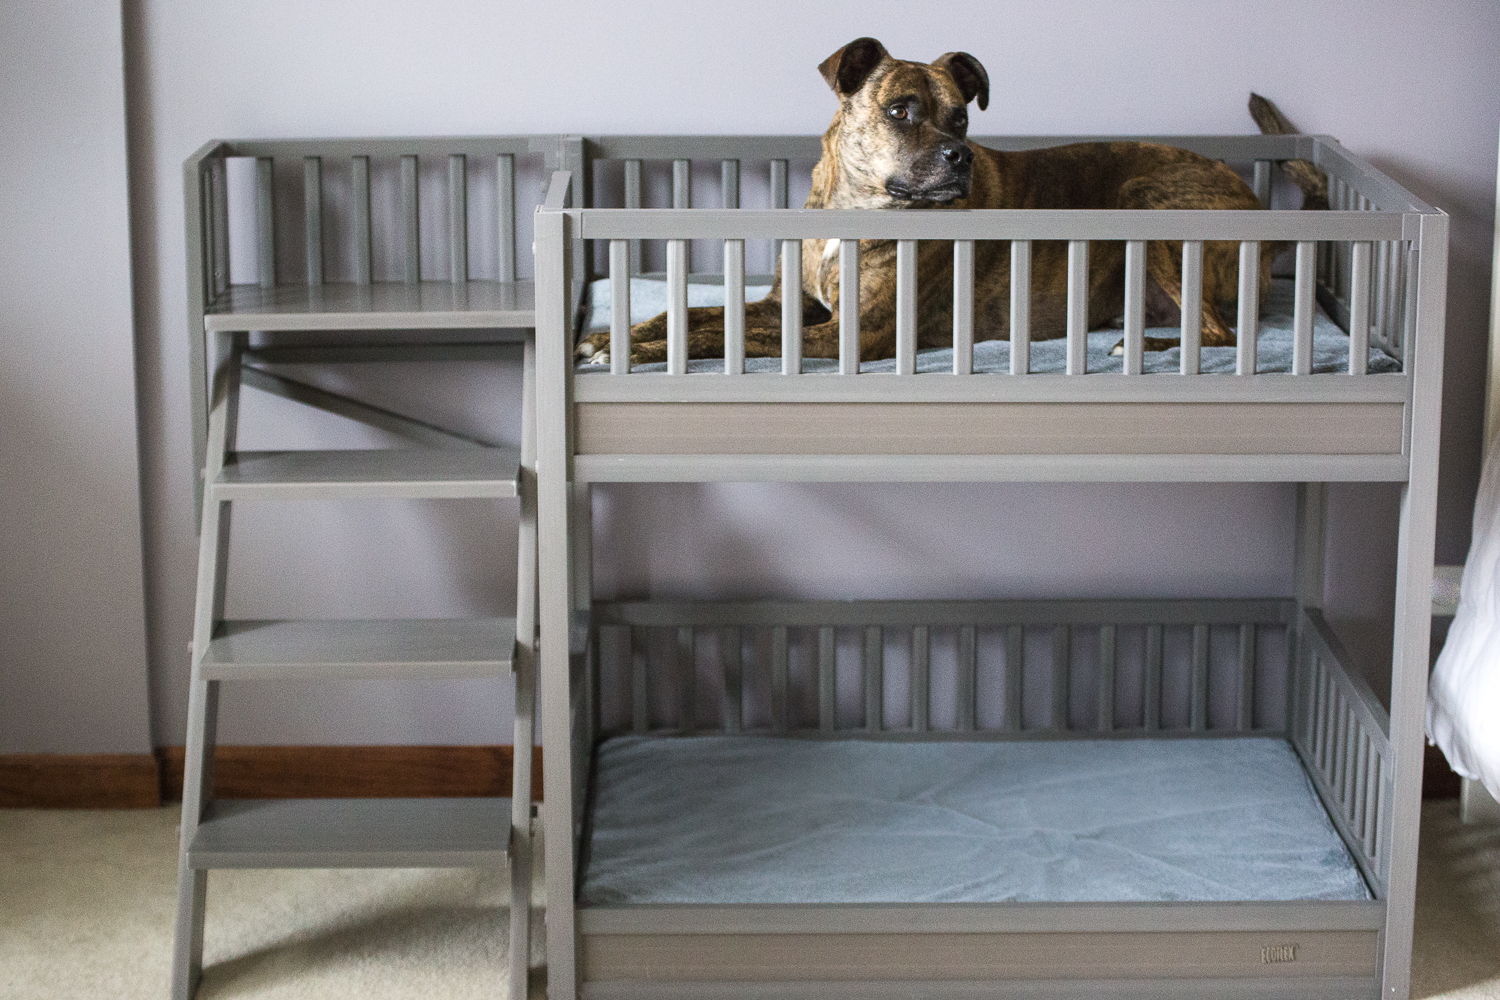 Ladder-bed. +80 Adorable Dog Bed Designs That Will Surprise You